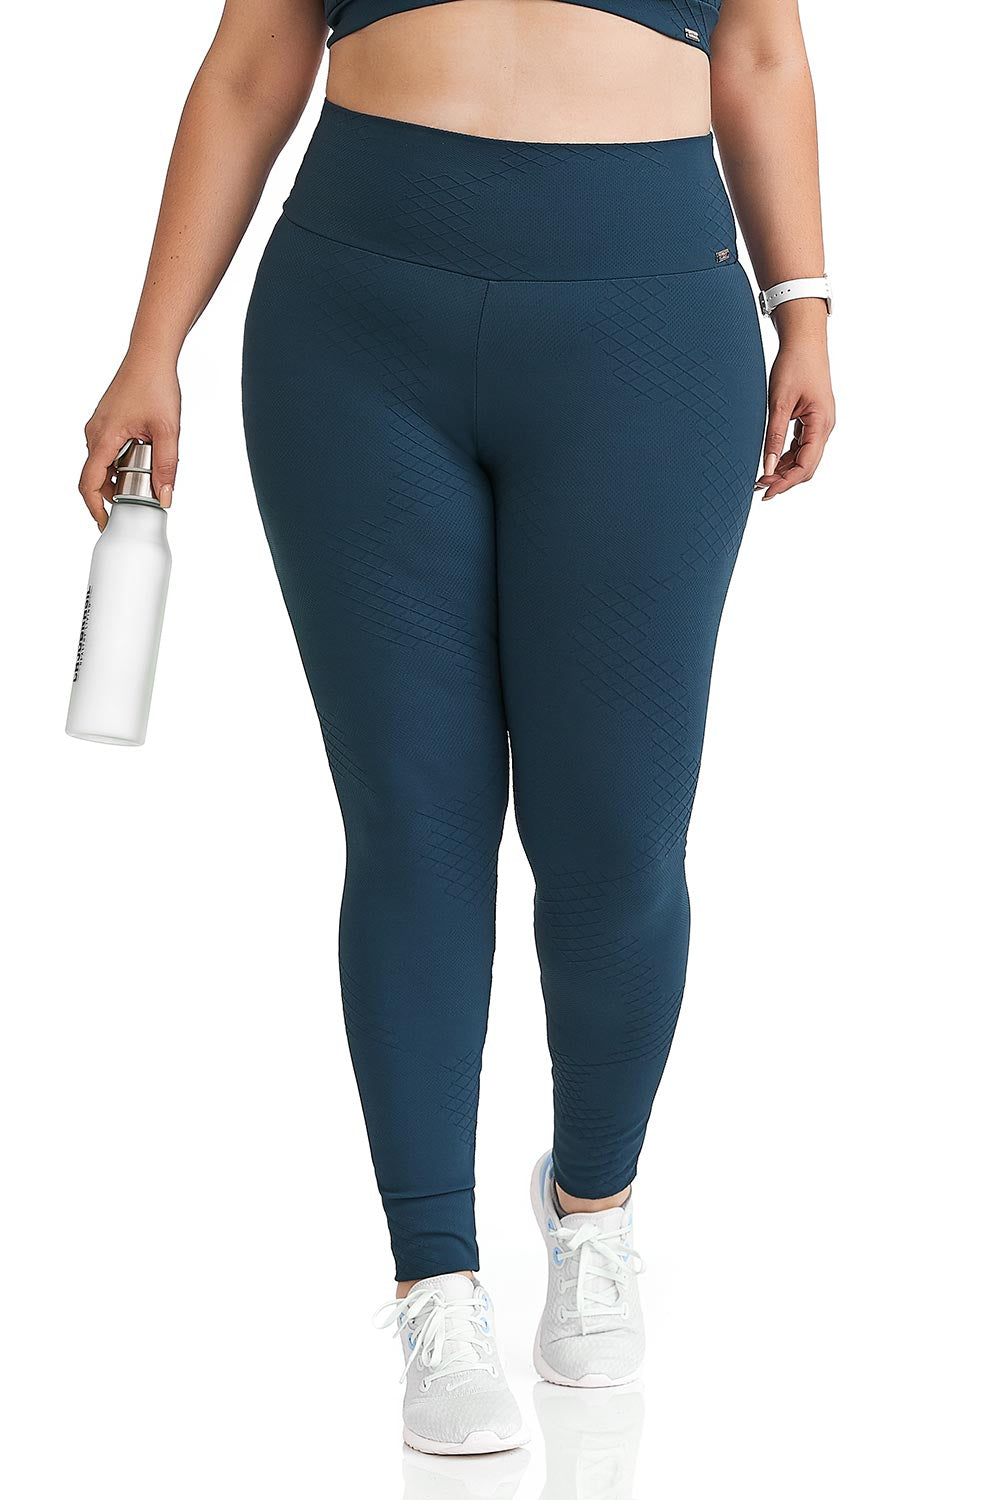 Cajubrasil Textured Legging-8008.129